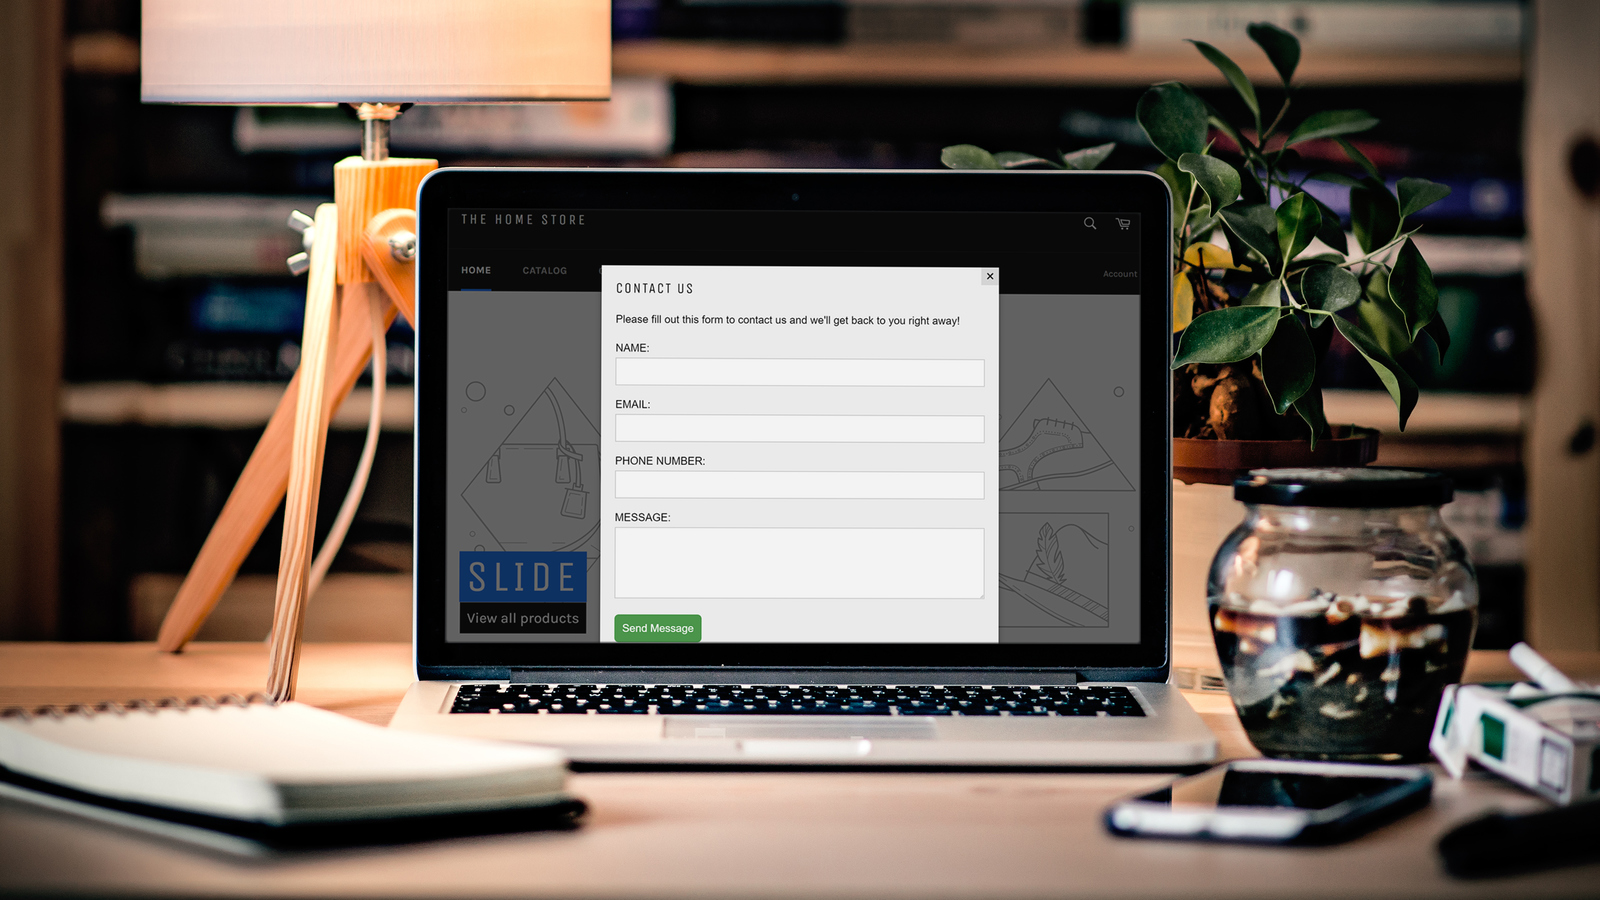 Example Contact Form on Desktop